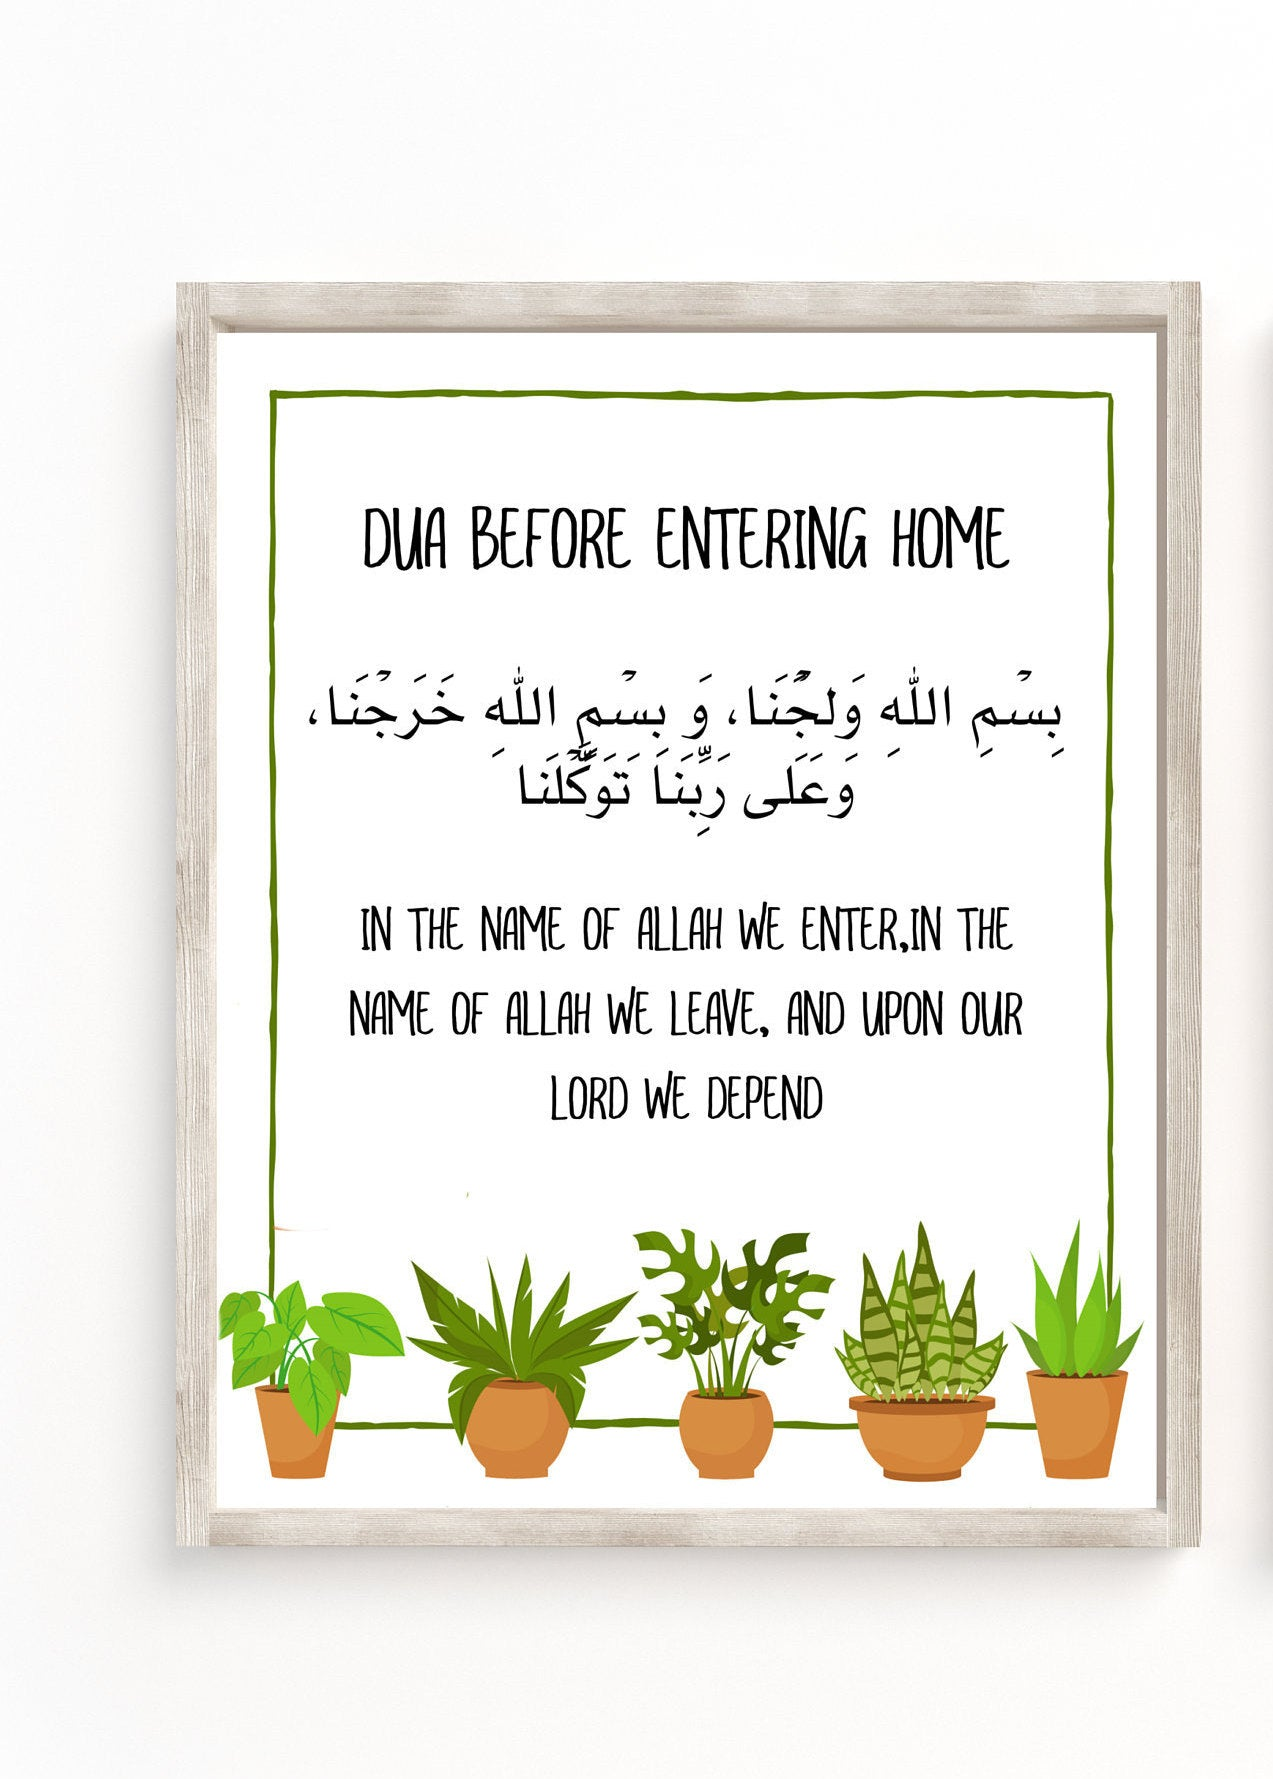 Dua Before Entering And Dua Before Leaving Home Cute House Plant Illustration Prints Set Of Two Printable Housewarming Islamic Gift Digital Downloads Madihacreates